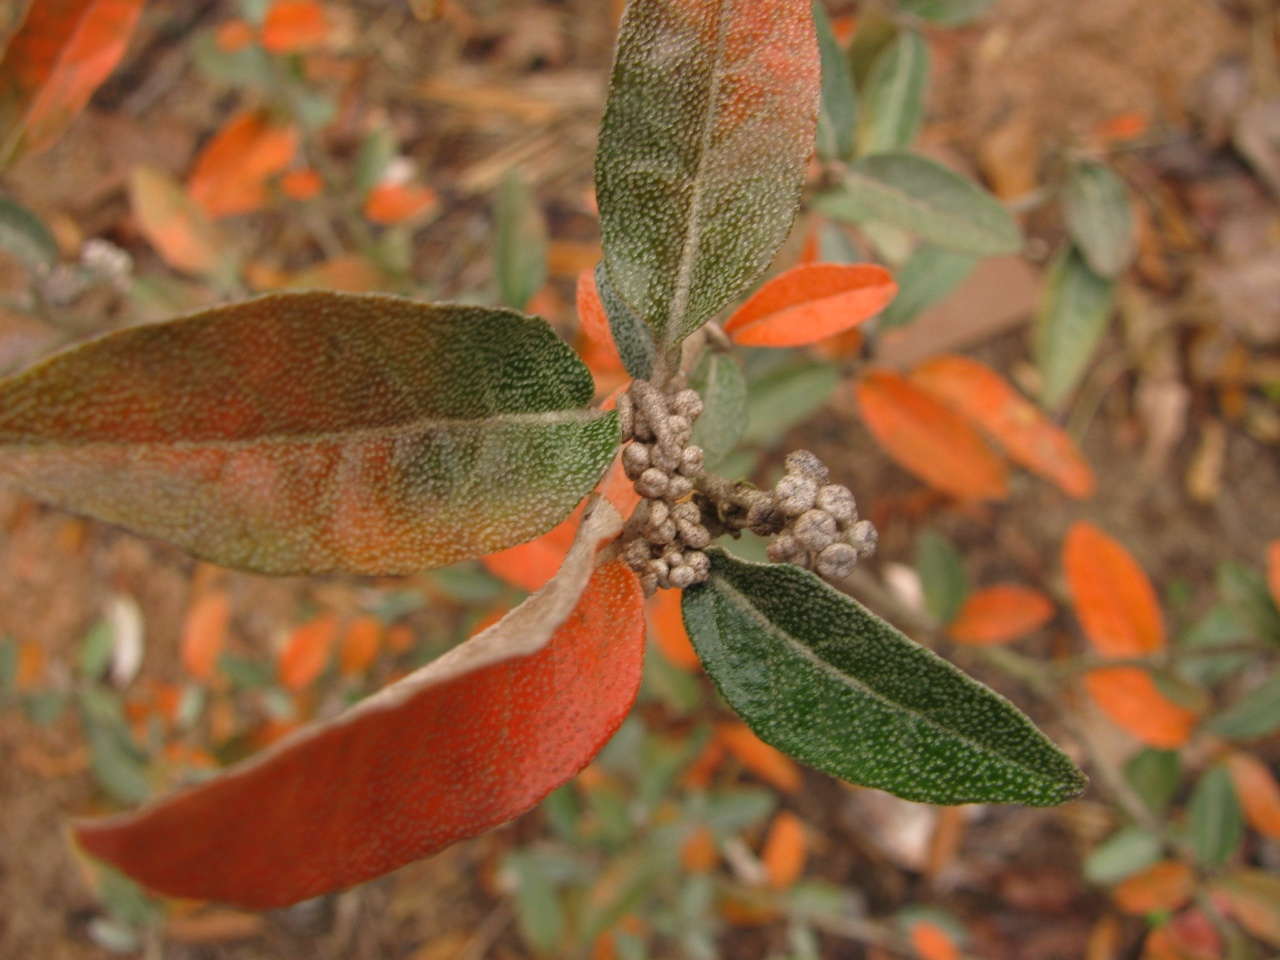 The Scientific Name is Croton alabamensis var. alabamensis. You will likely hear them called Alabama Croton. This picture shows the Fall colors in November with next years flower buds formed. Plant is semi-evergreen so the orange foliage persists into the following year. of Croton alabamensis var. alabamensis